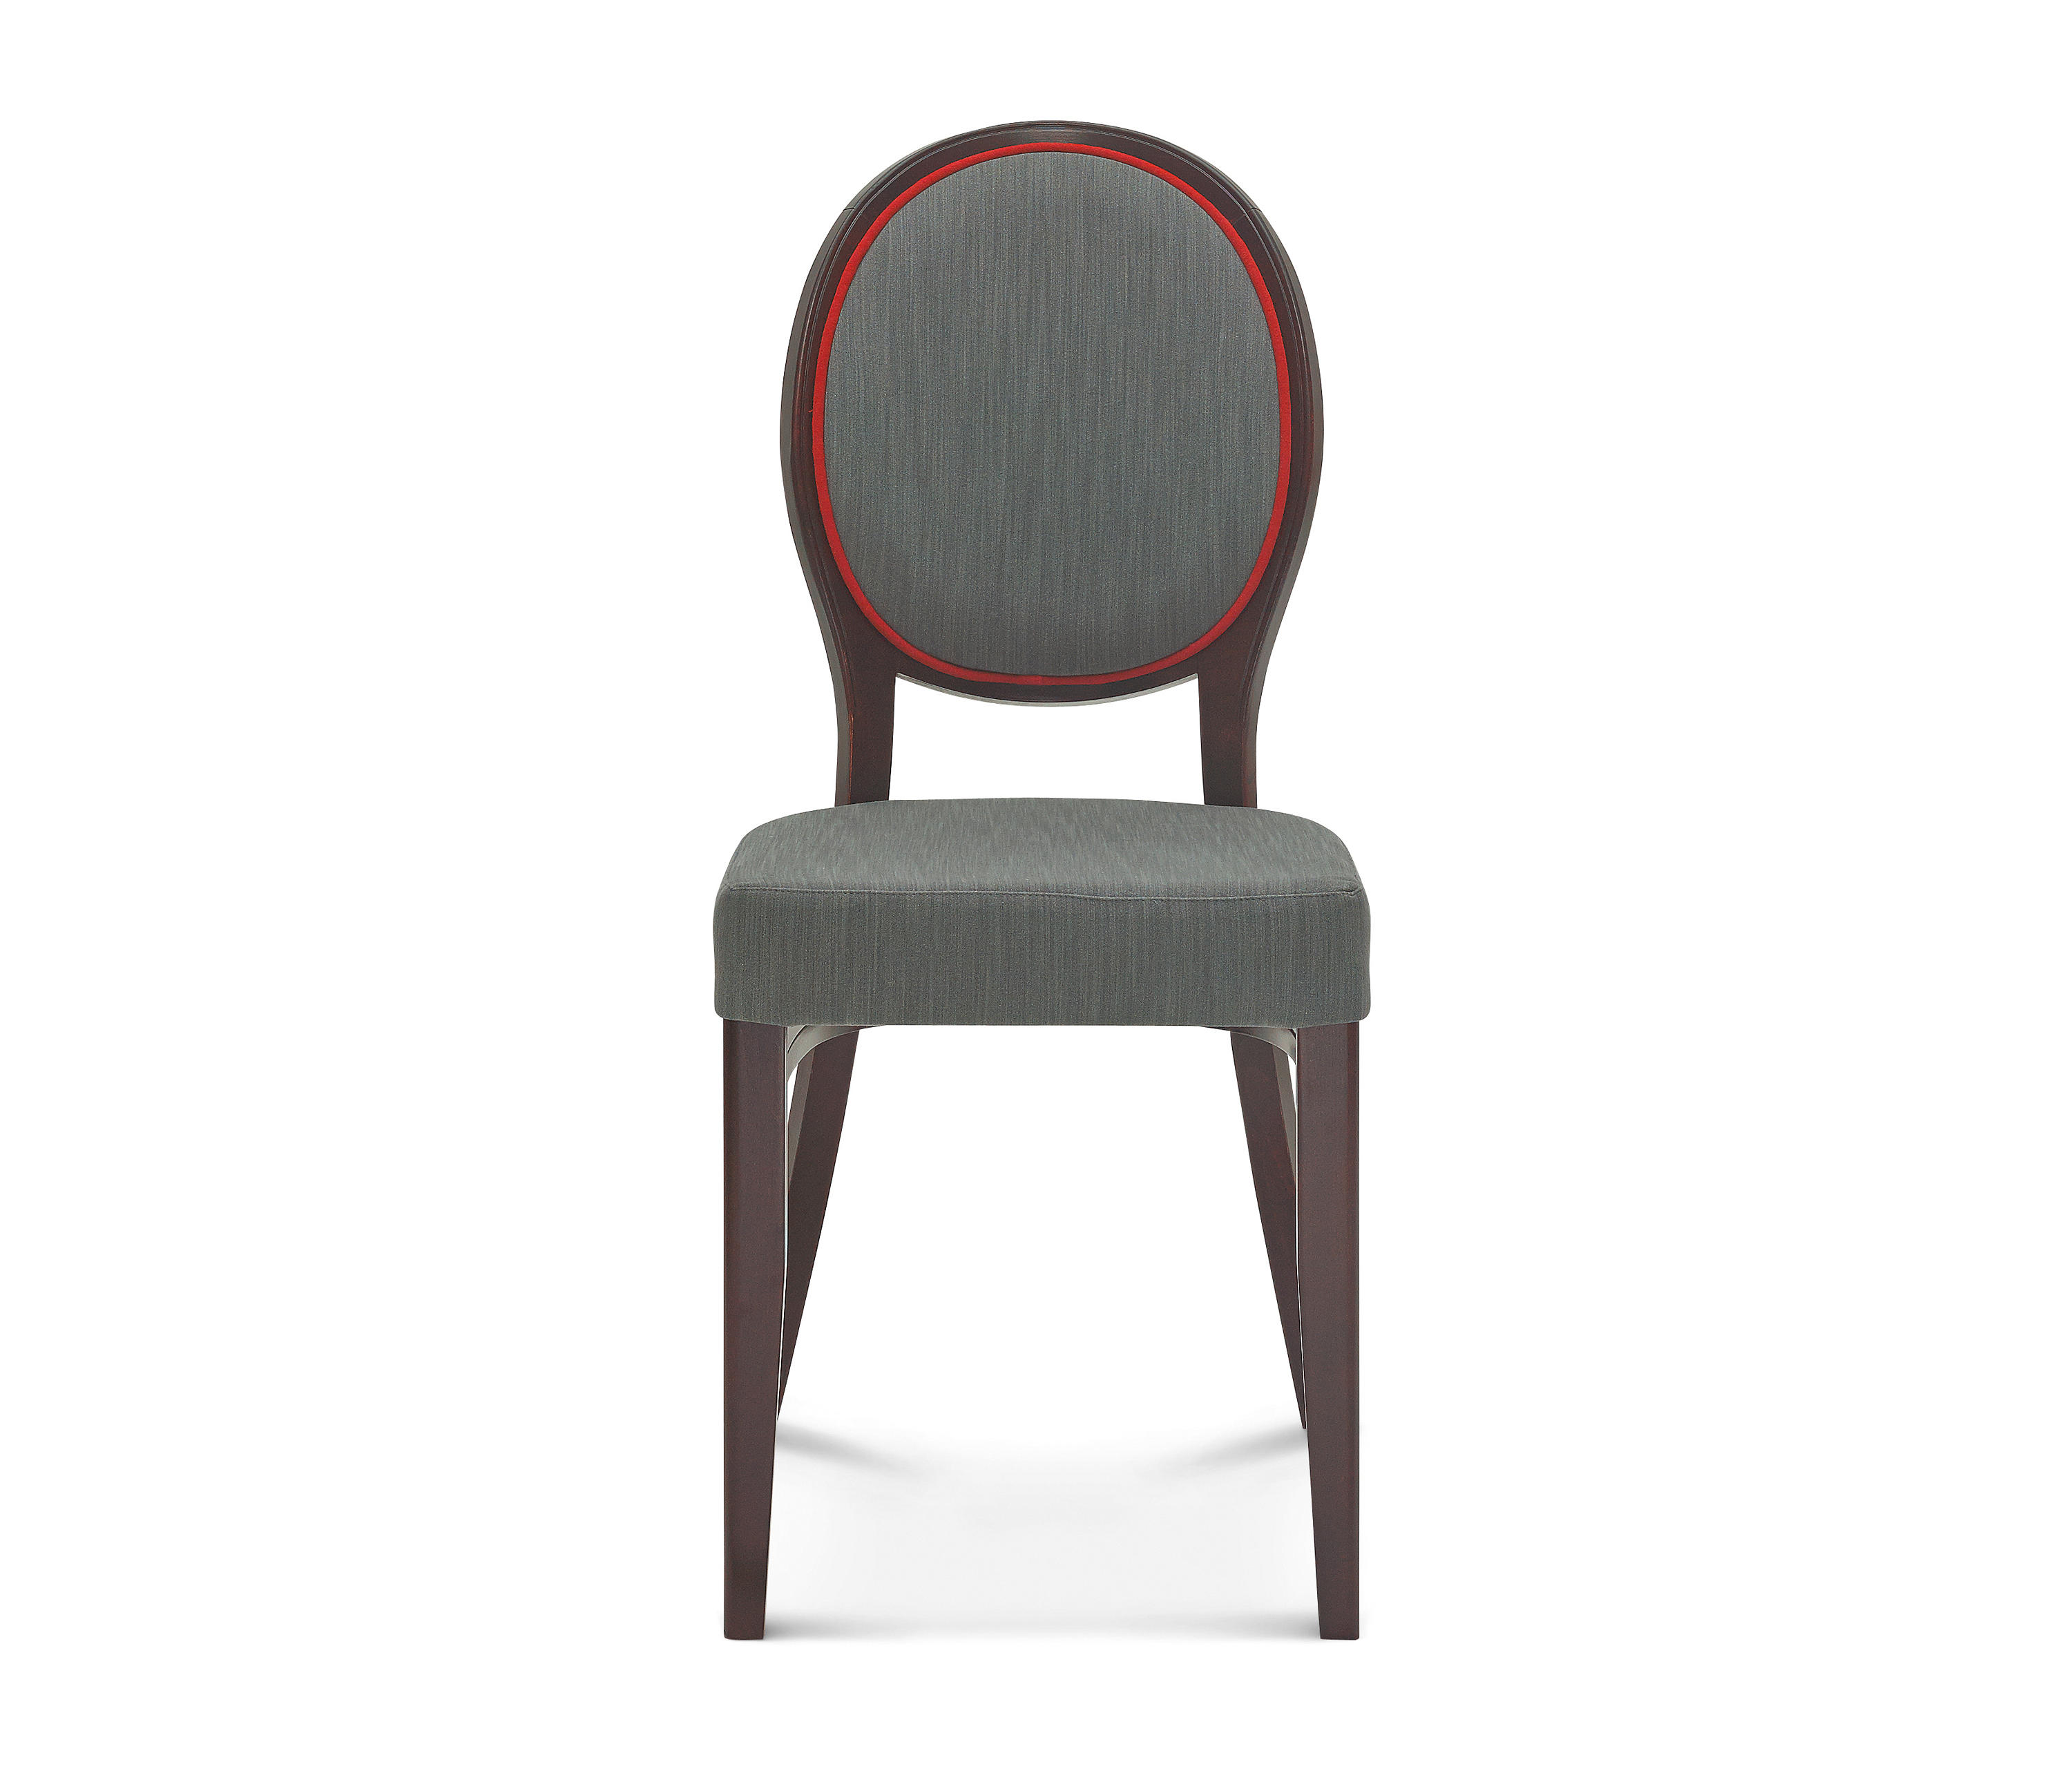 Ordinaire A 0951 Chair By Fameg | Chairs ...